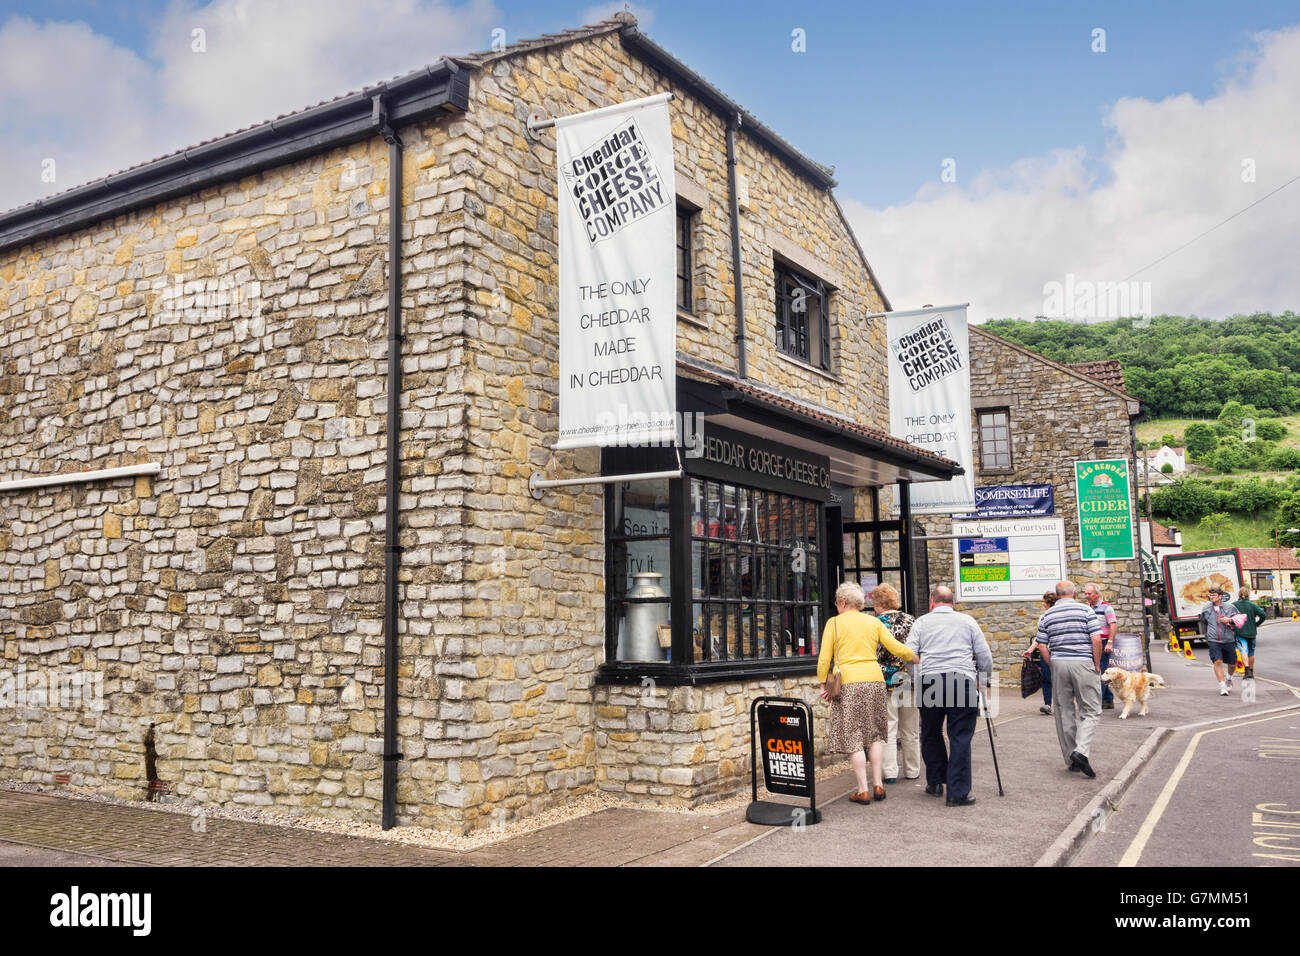 Cheddar Gorge Cheese Company, Cheddar Gorge, Somerset, England, UK - Stock Image